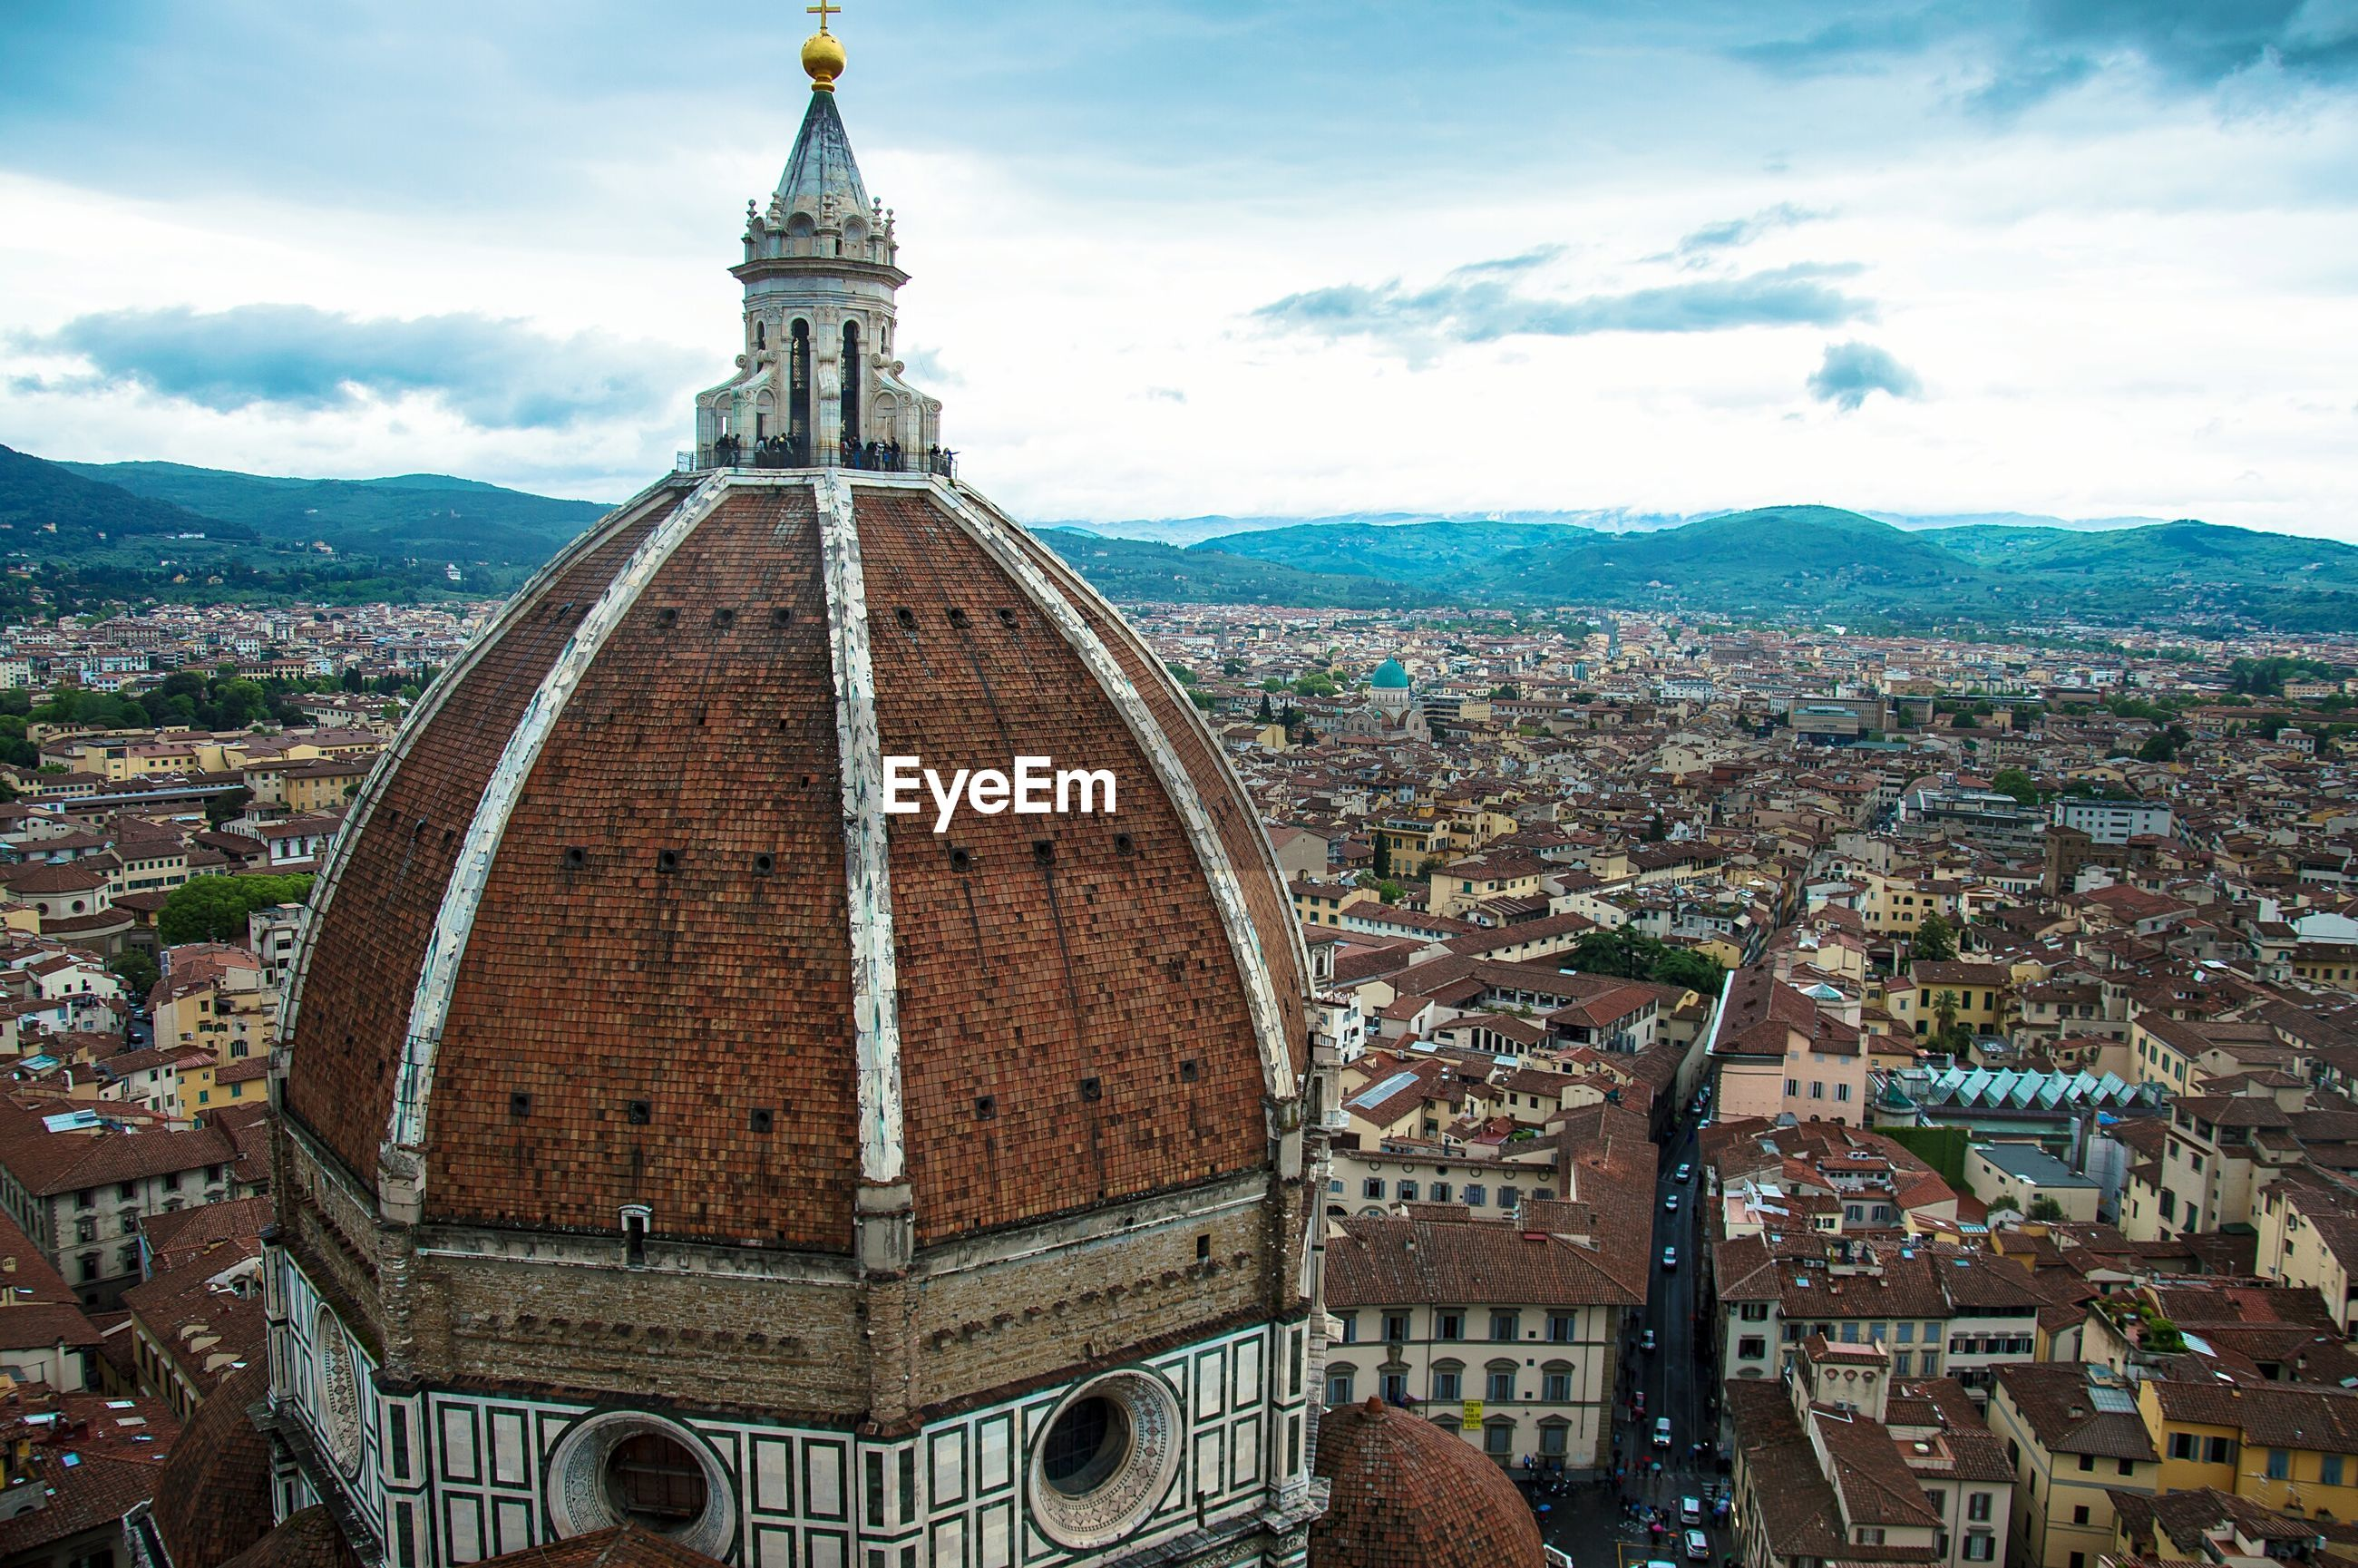 Florence cathedral in city against sky